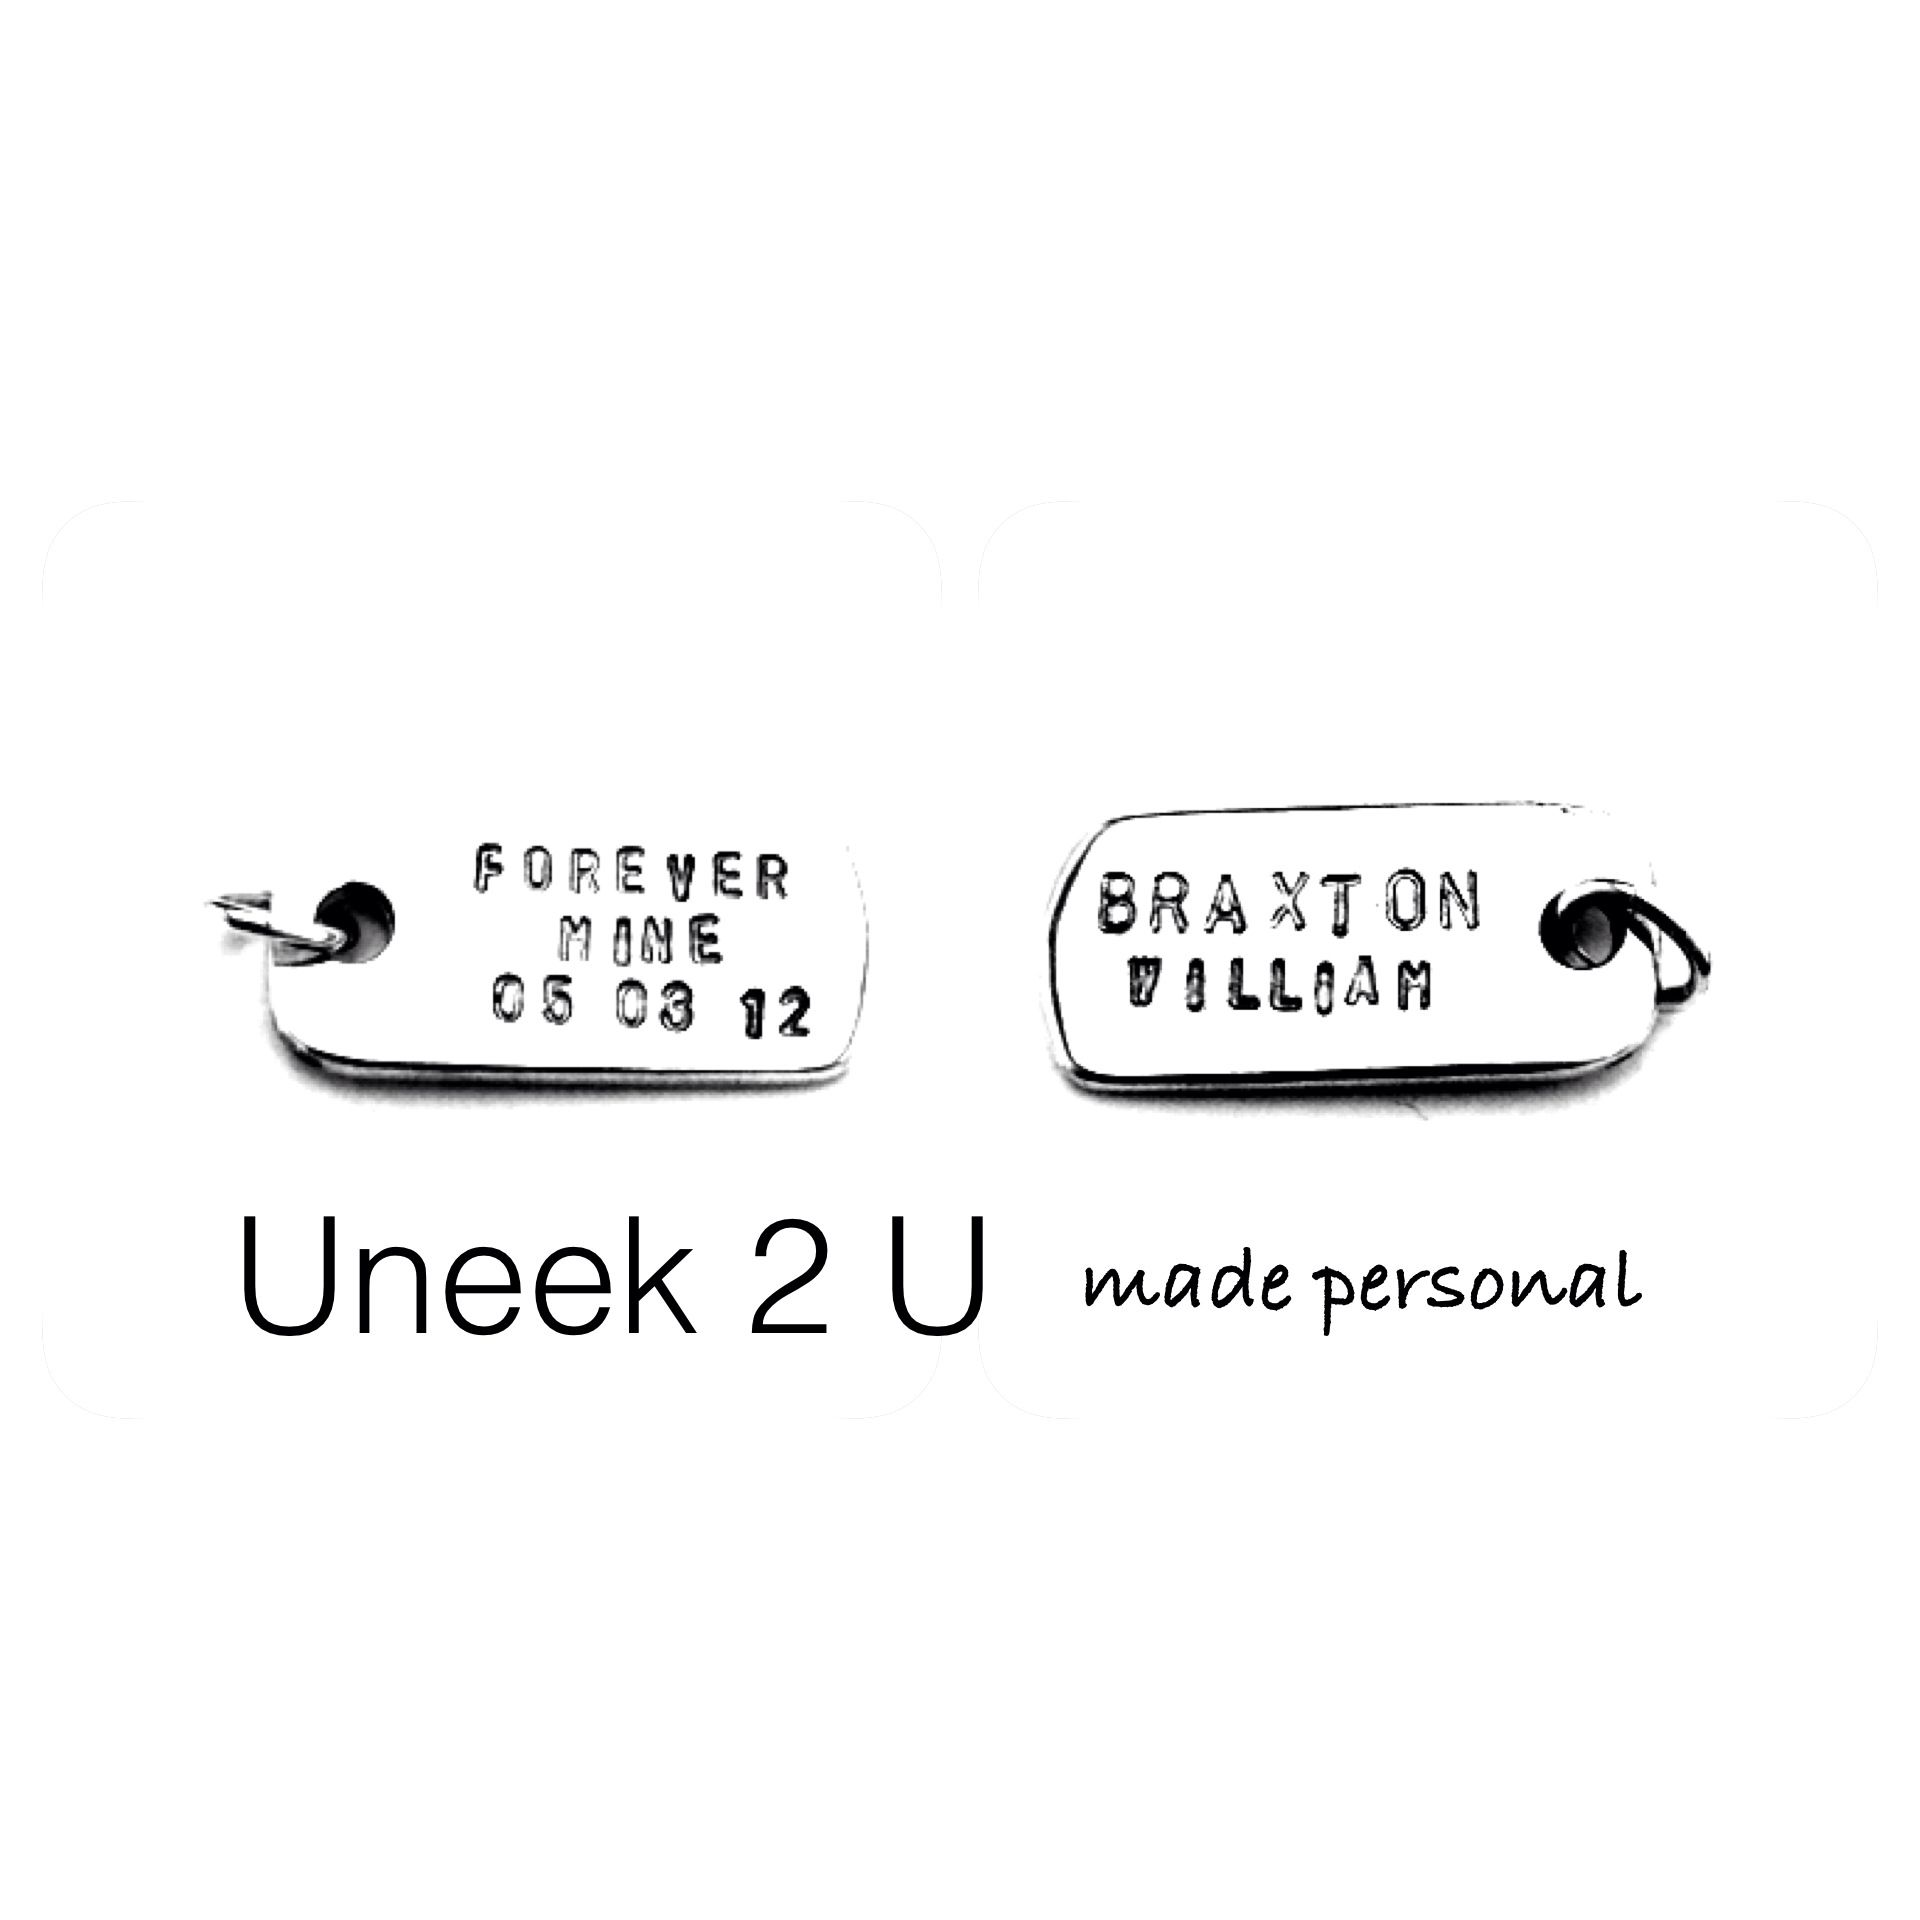 Hand crafted and hand stamped personalised silver jewellery that emotionally connects us to a special someone or important event in our loves. Each piece is as unique as the person it is created for ... UNEEK 2 U and made personal by me! U2U xxx